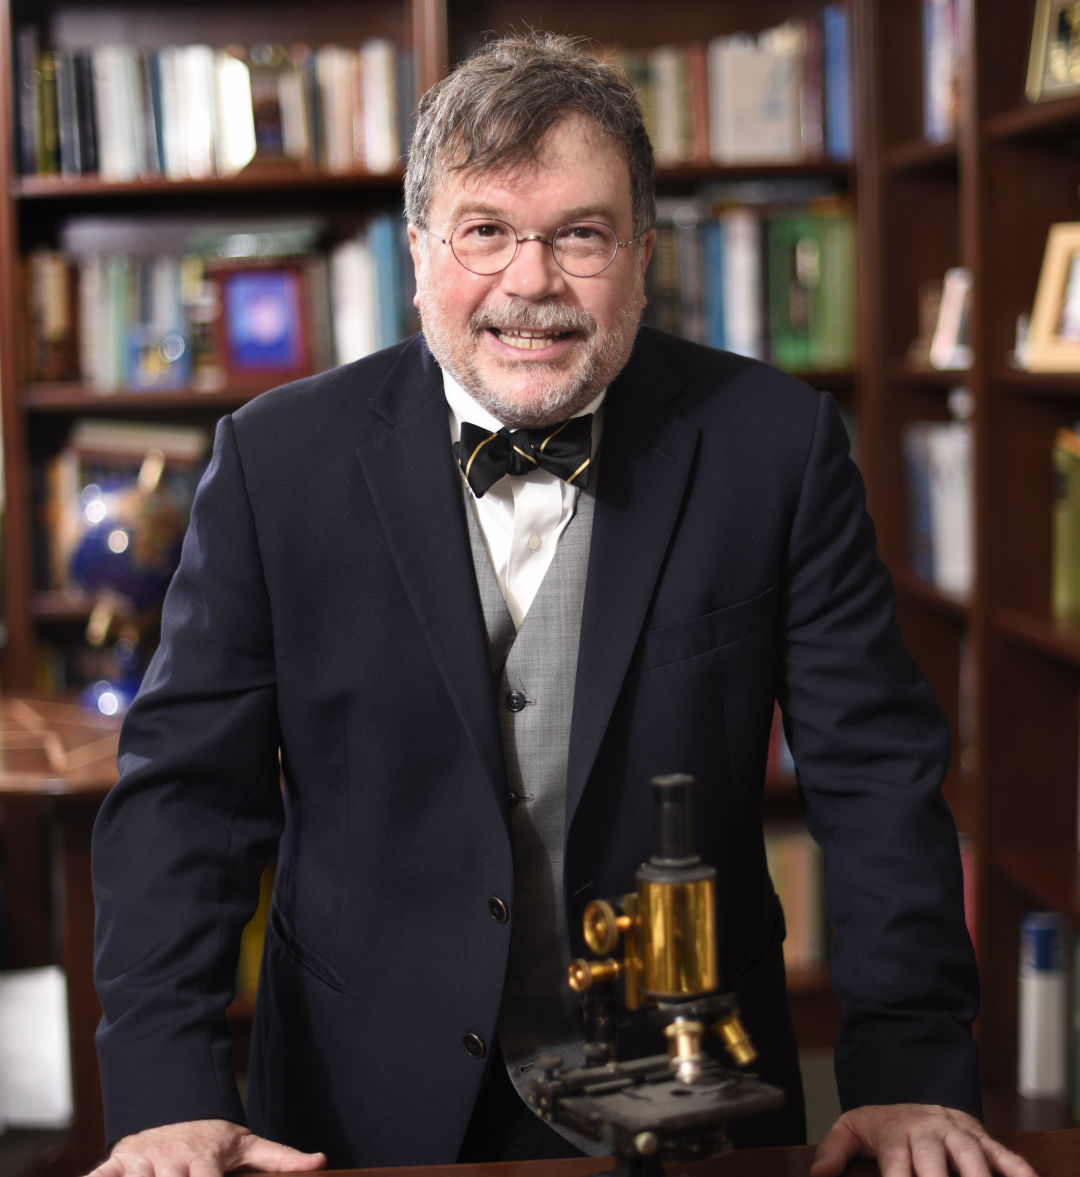 Dr. Peter Hotez stands in front of a microscope.